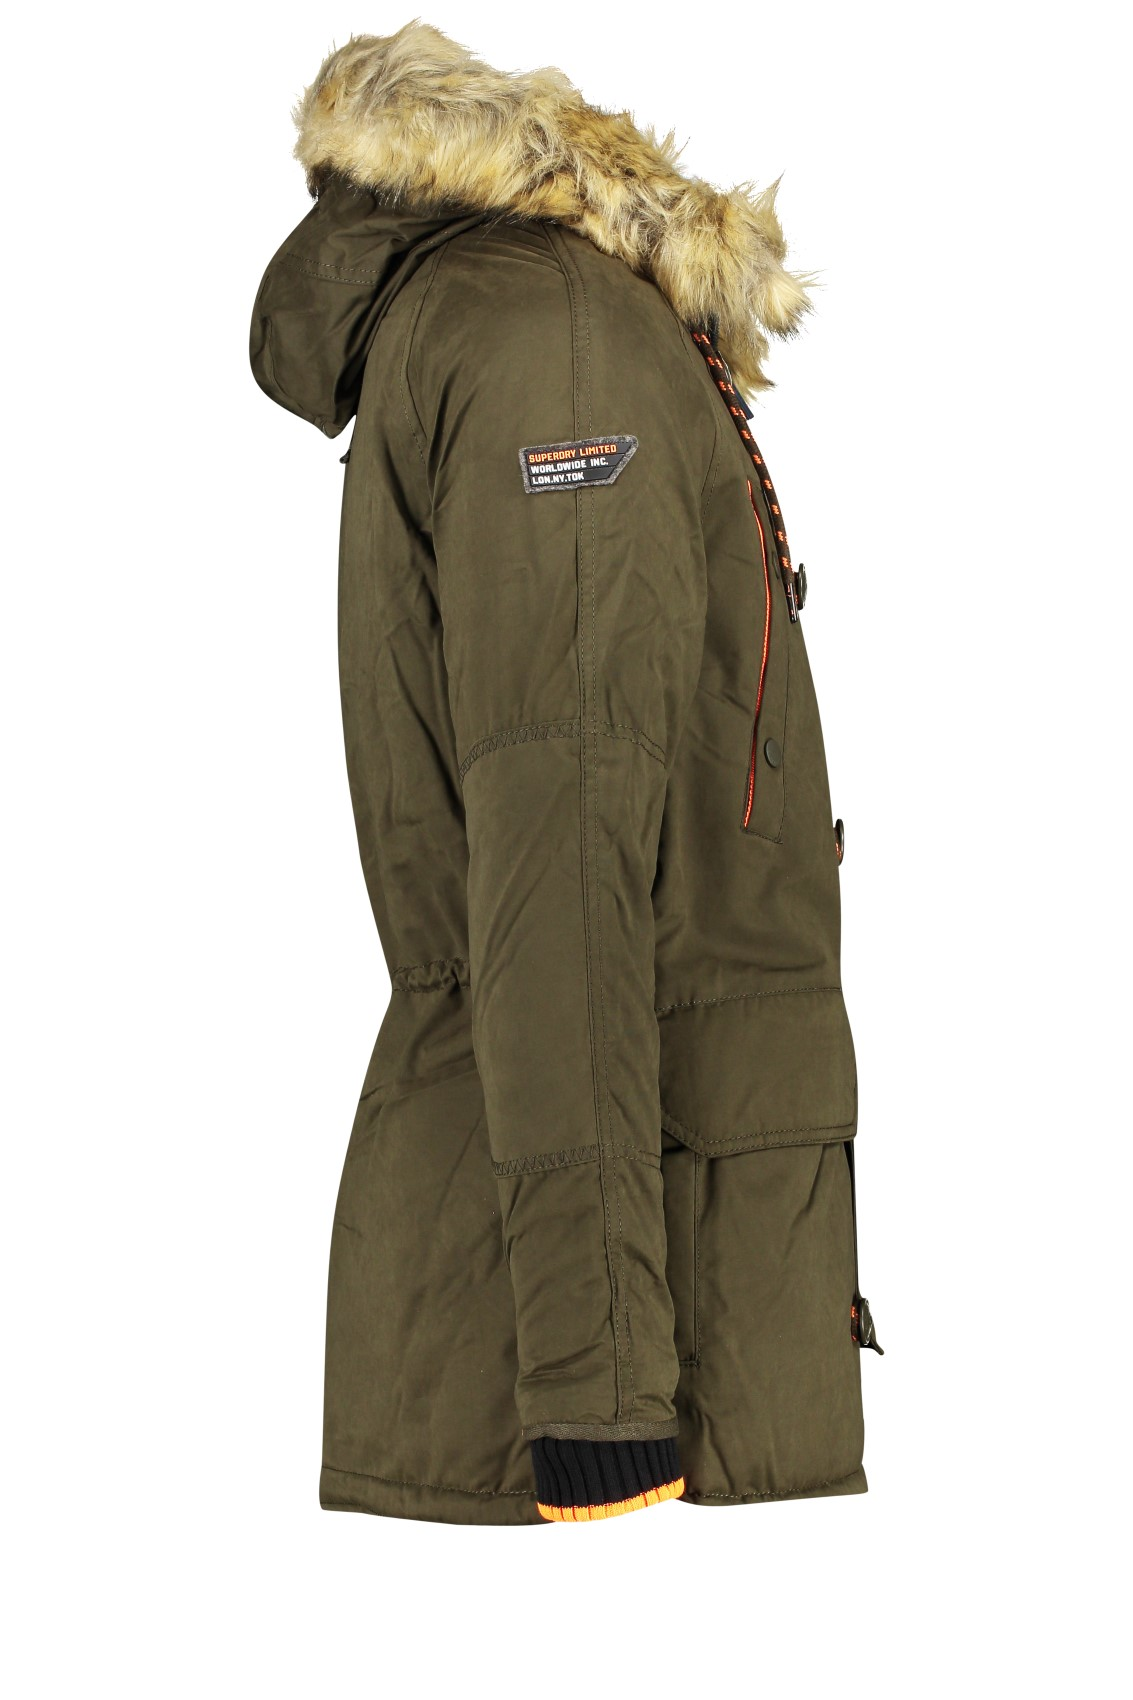 Superdry Green Superdry Army Army Parka Jas Green Jas Parka Superdry Jas Parka 1wnBqaBH